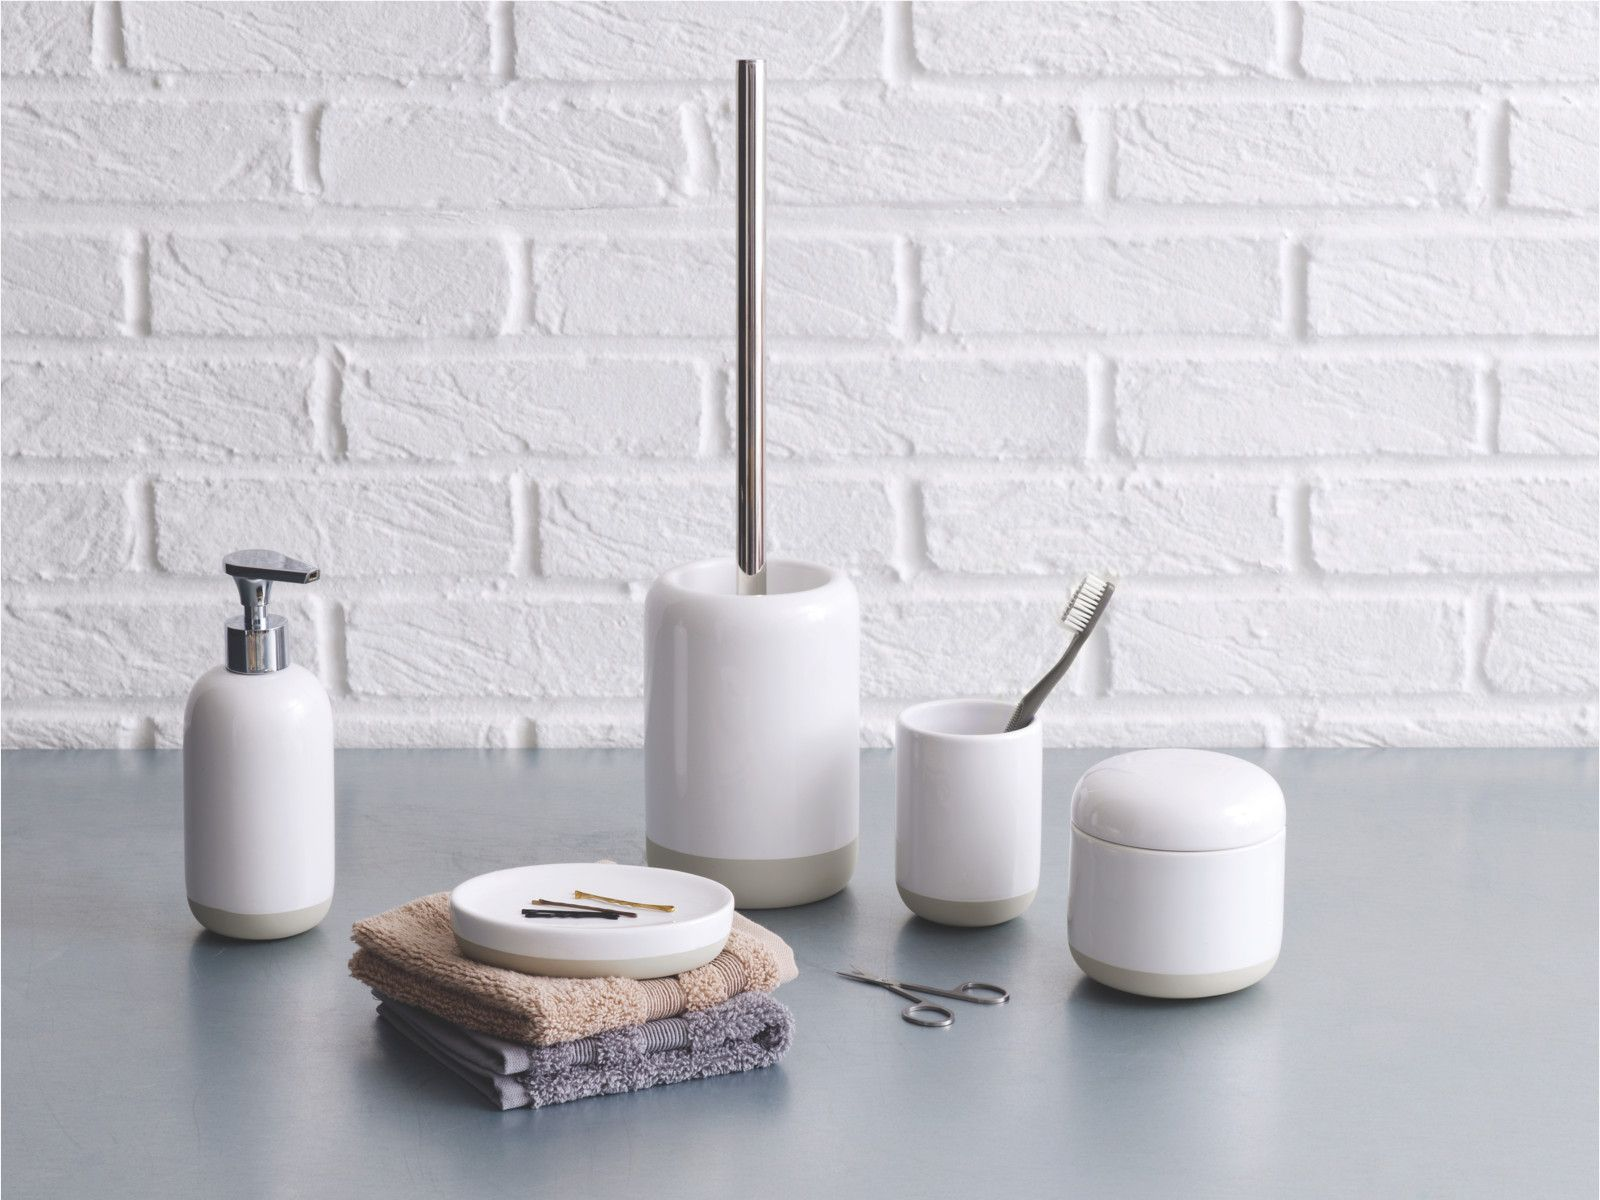 check out the new furniture and accessories from our new ss14 lookbook bathroom accessories setstoilet brushwhite - White Bathroom Accessories Ceramic